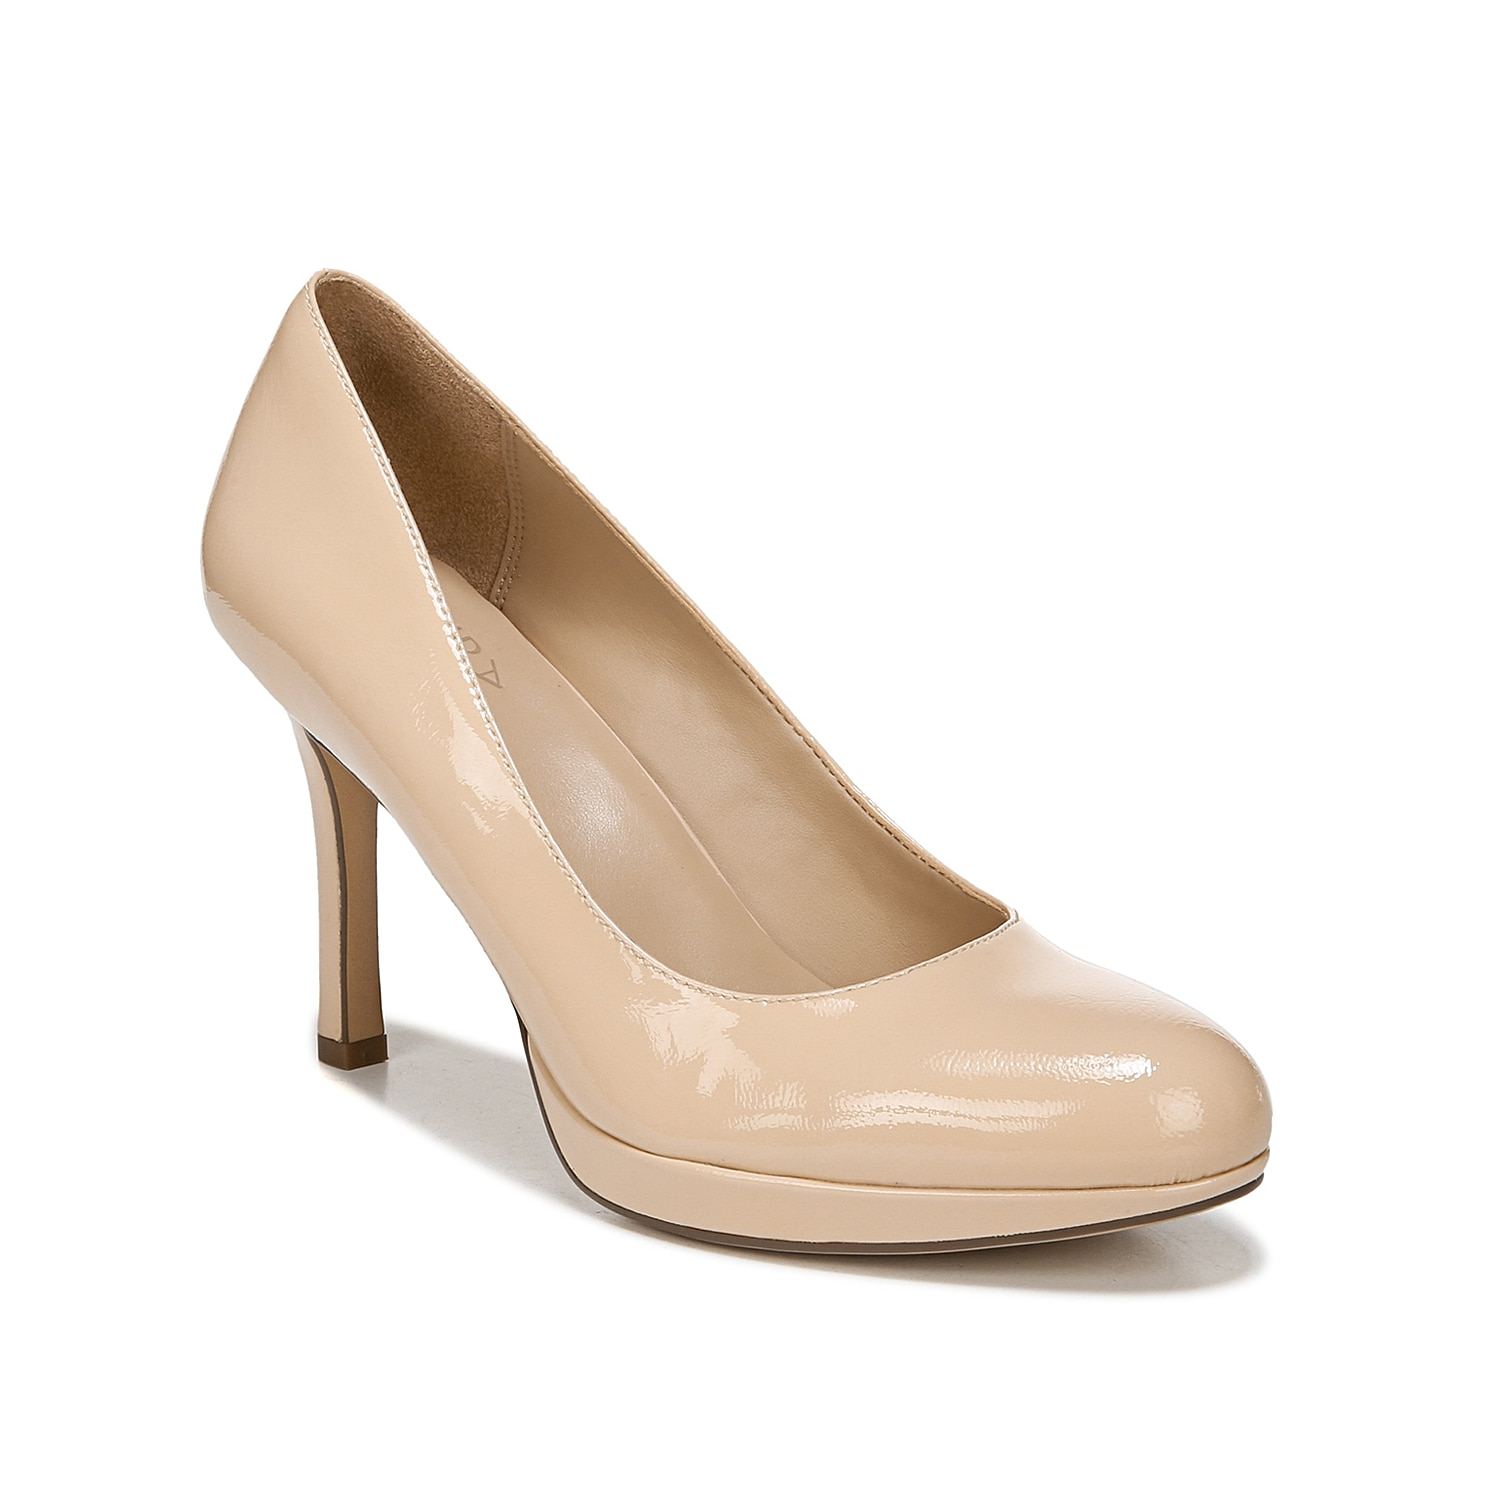 Dress you your ensemble up in comfort and style with the Celina pump from Naturalizer. This silhouette is fashioned with a towering heel and padded footbed that will keep you on your feet!